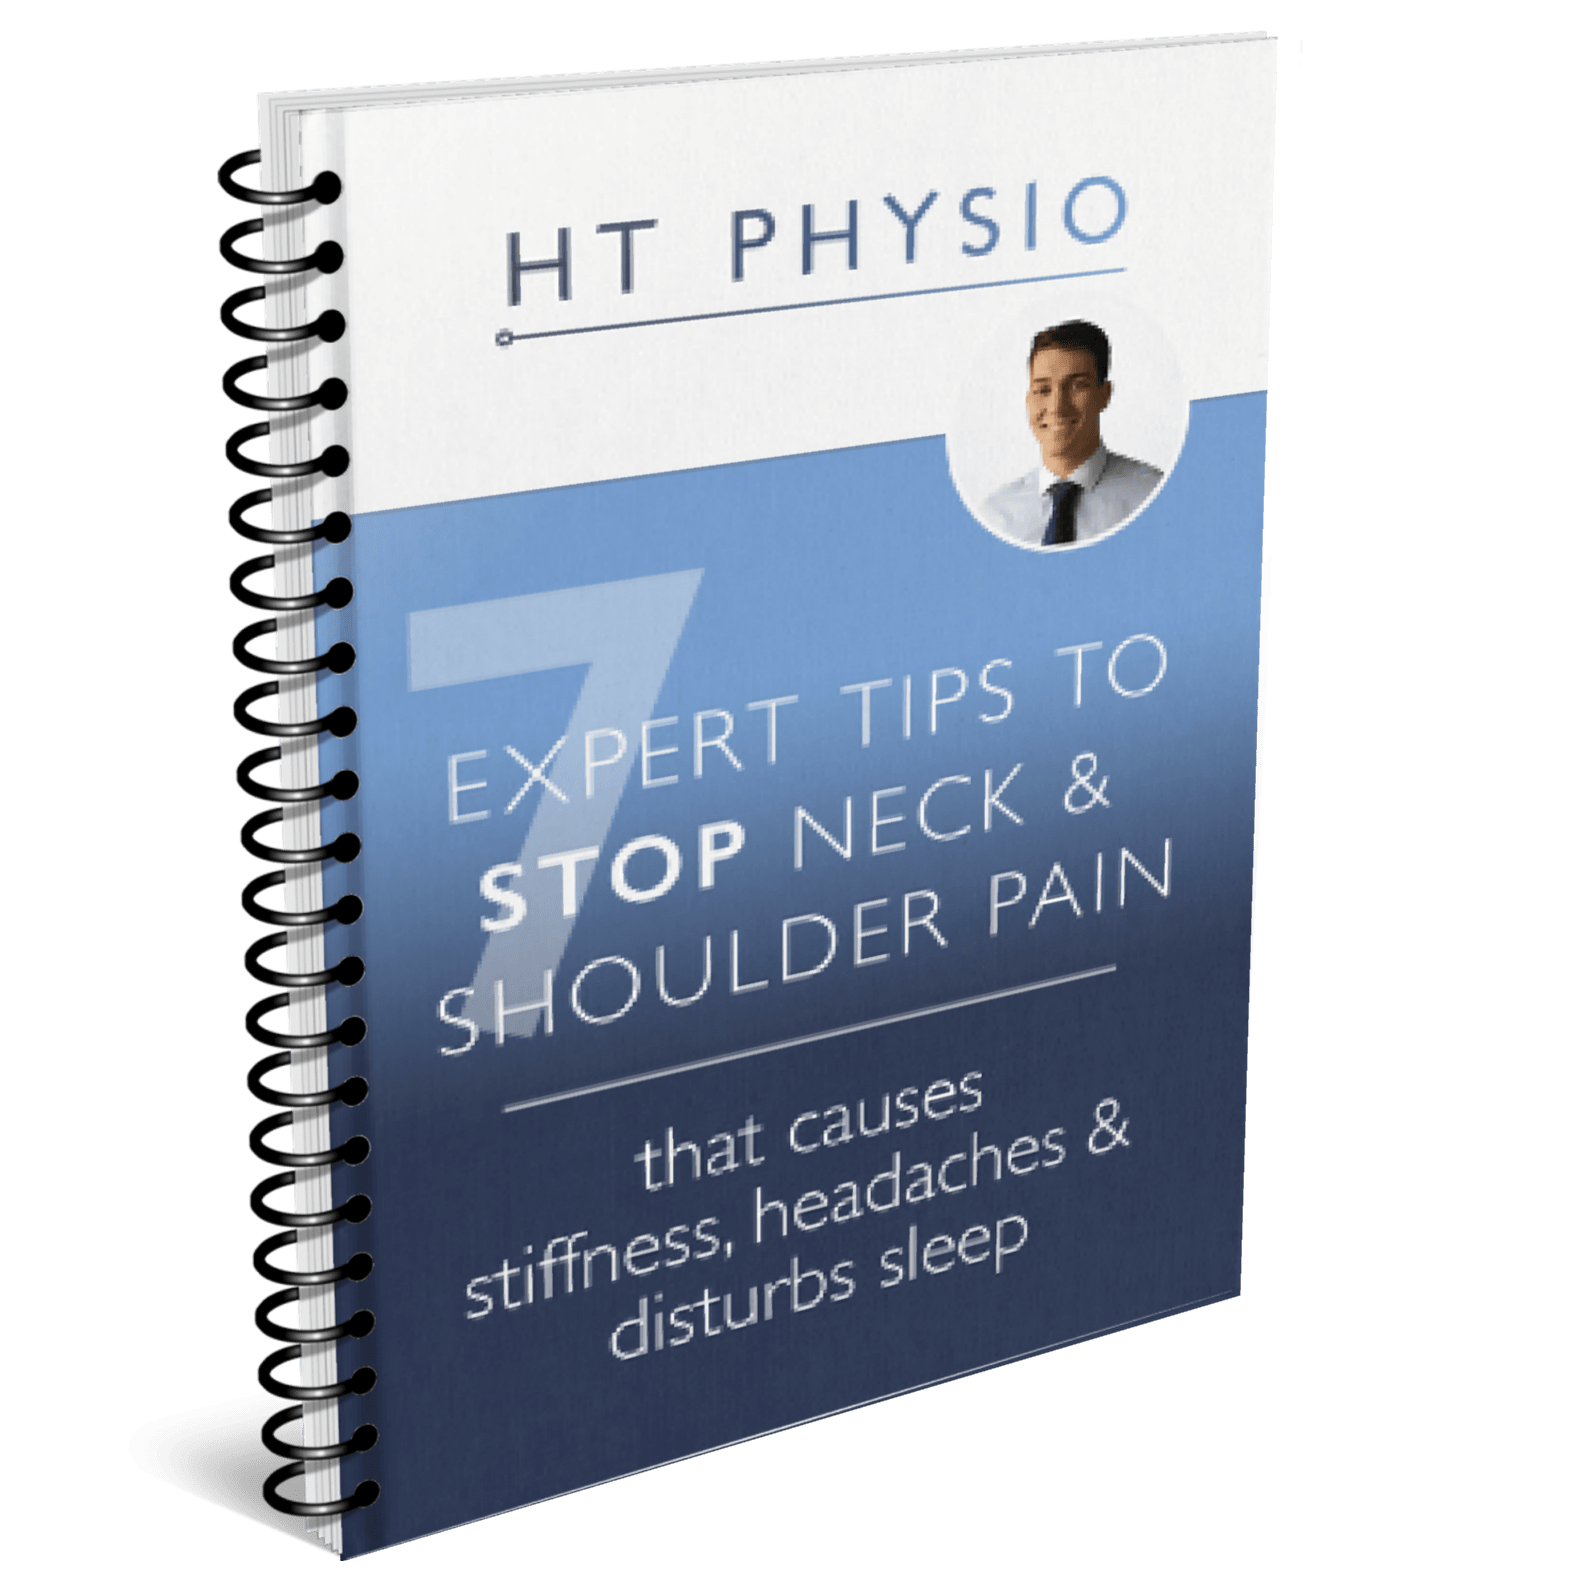 physio farnham, physiotherapy farnham, physiotherapist farnham, farnham neck pain specialist, farnham shoulder pain specialist, farnham physio, shoulder pain physio, neck pain physio